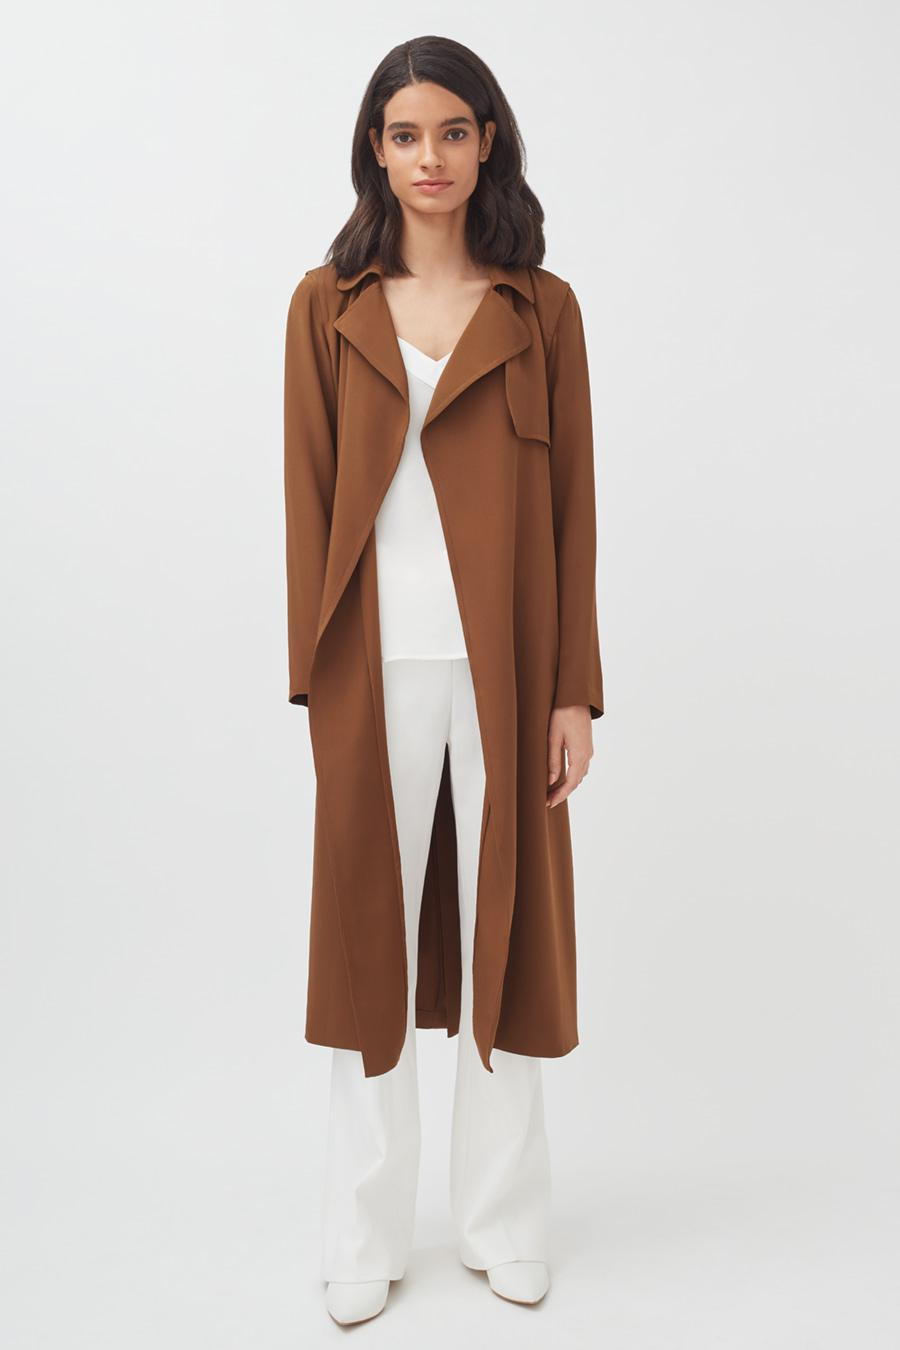 Women's Silk Classic Trench in Chestnut   Size: 3